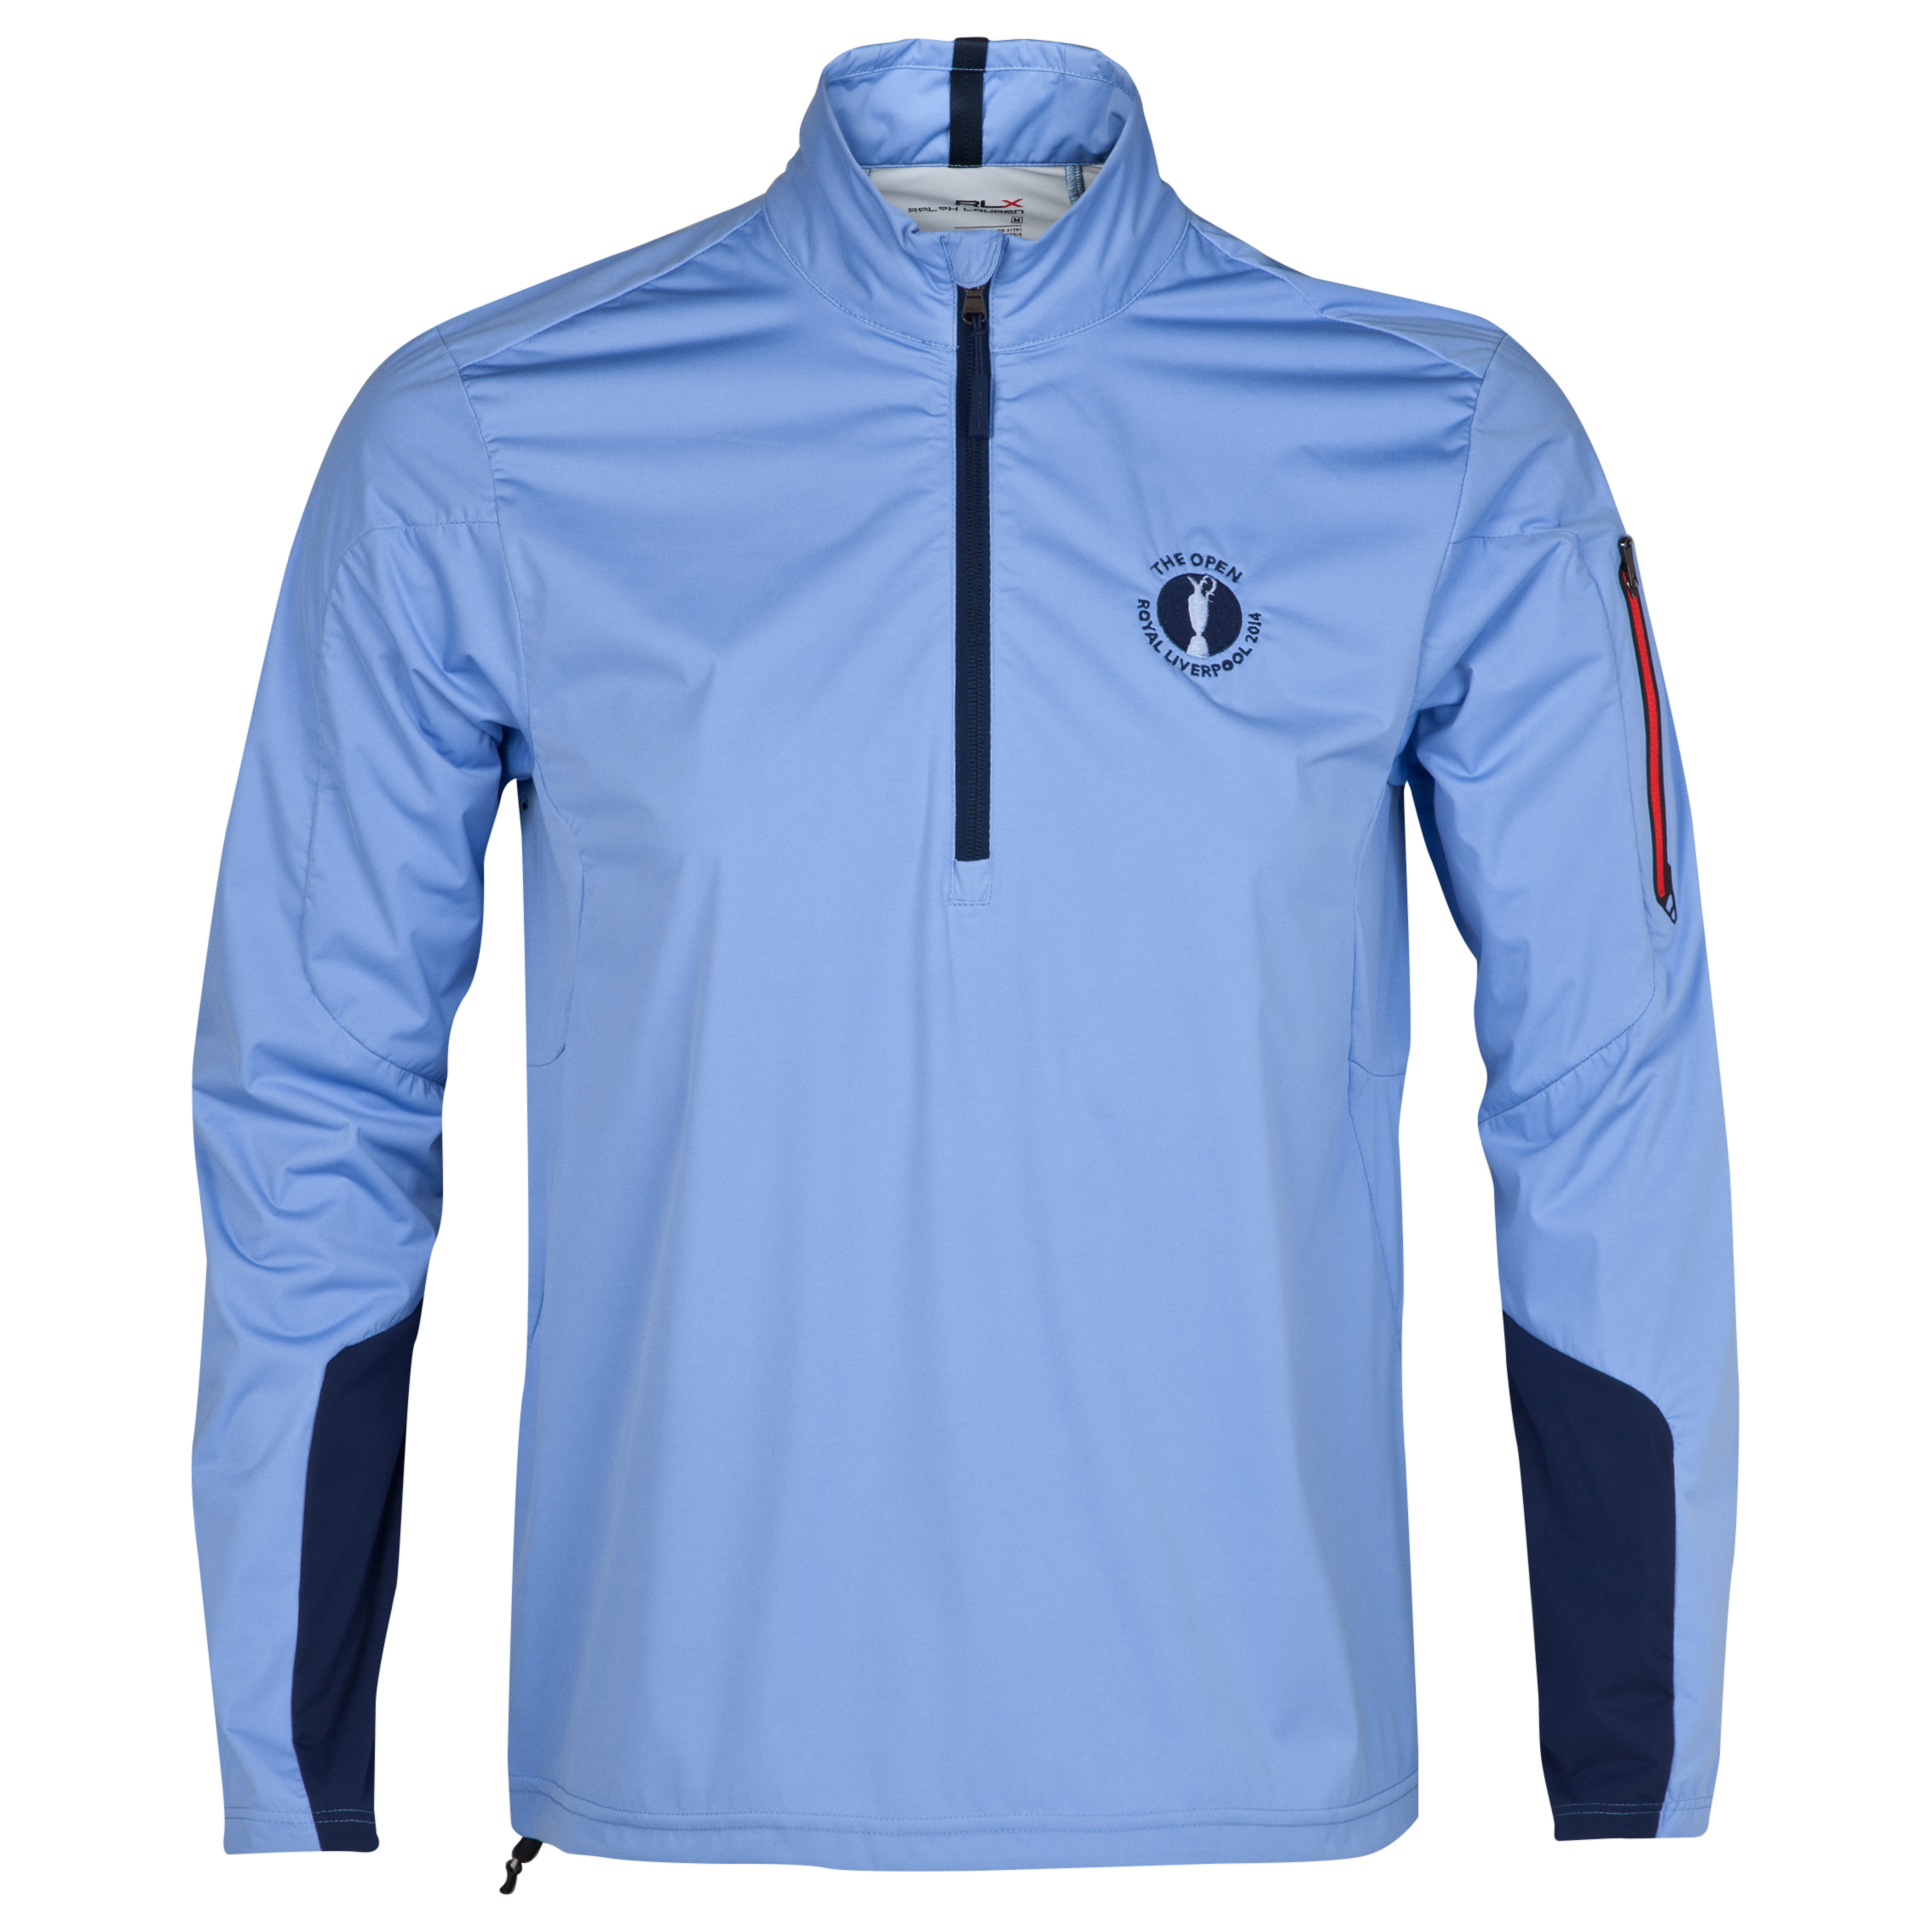 The Open Championship Royal Liverpool 2014 RLX 1/2 Zip Technical Layering Piece Blue